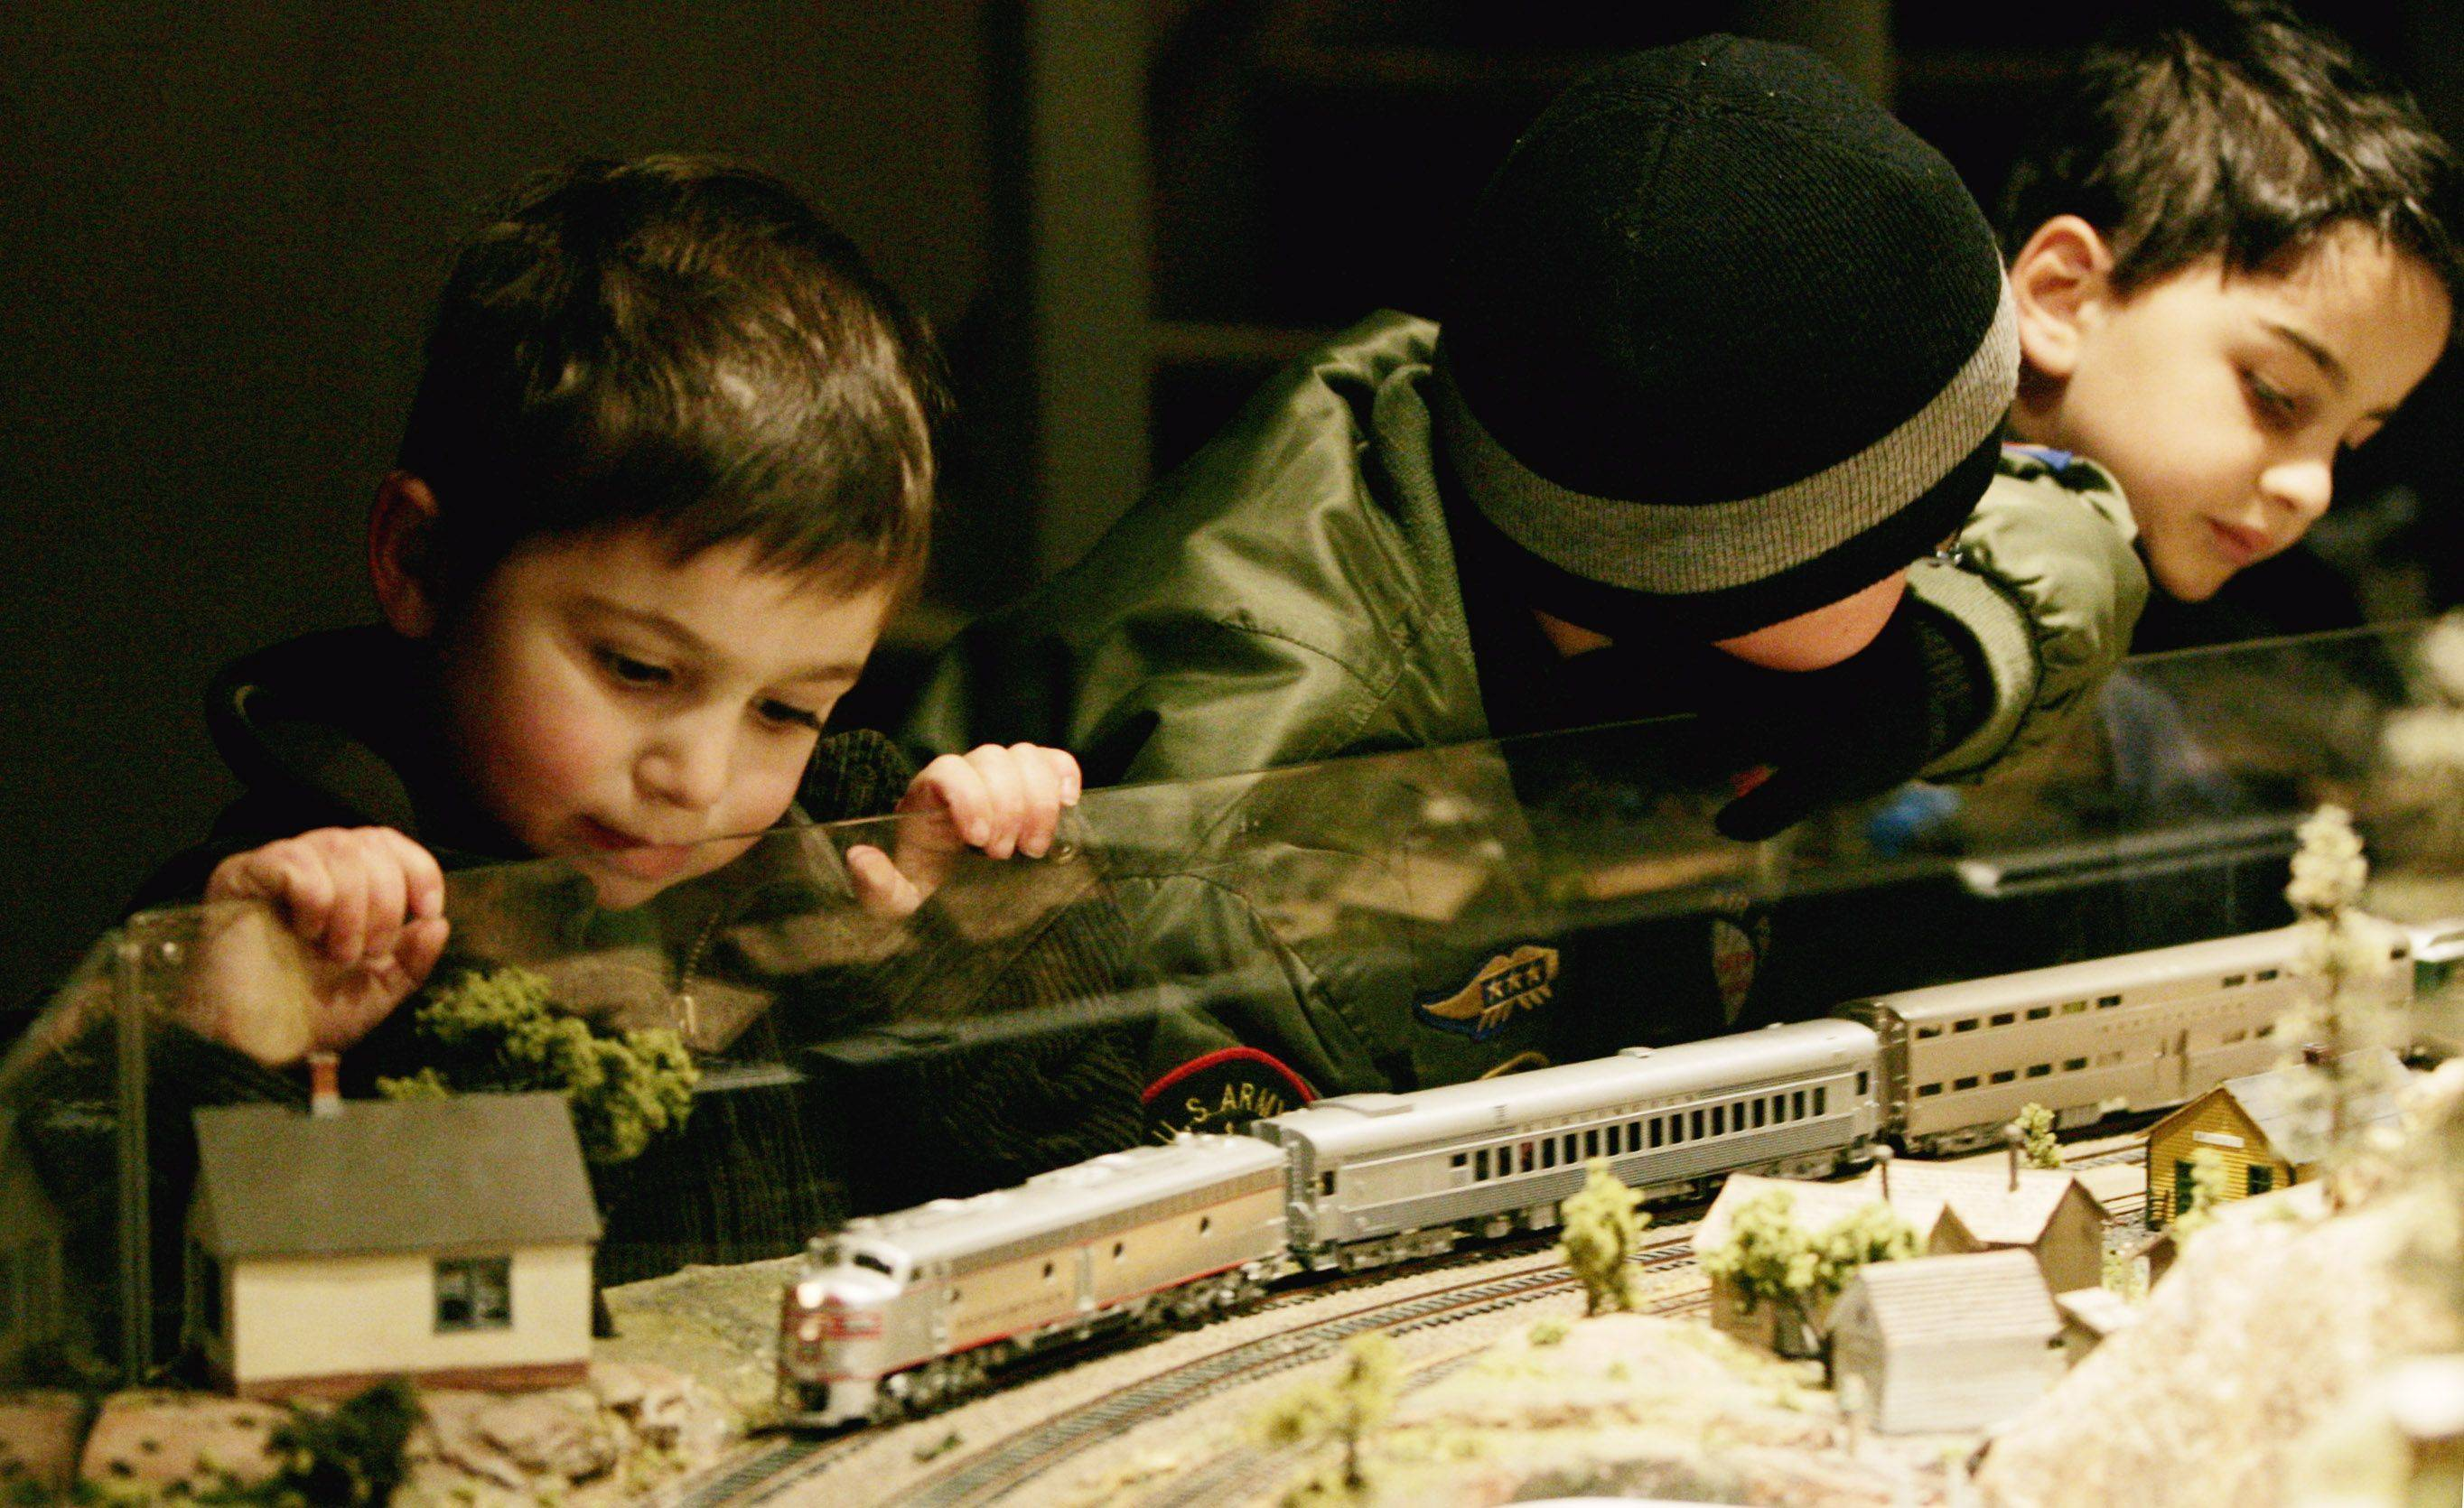 A model railroad display is just one of the holiday traditions the Lisle Heritage Society embraces in the annual Once Upon a Christmas celebration, part of a weekend of festivities that includes the village's tree-lighting and luminaria display.